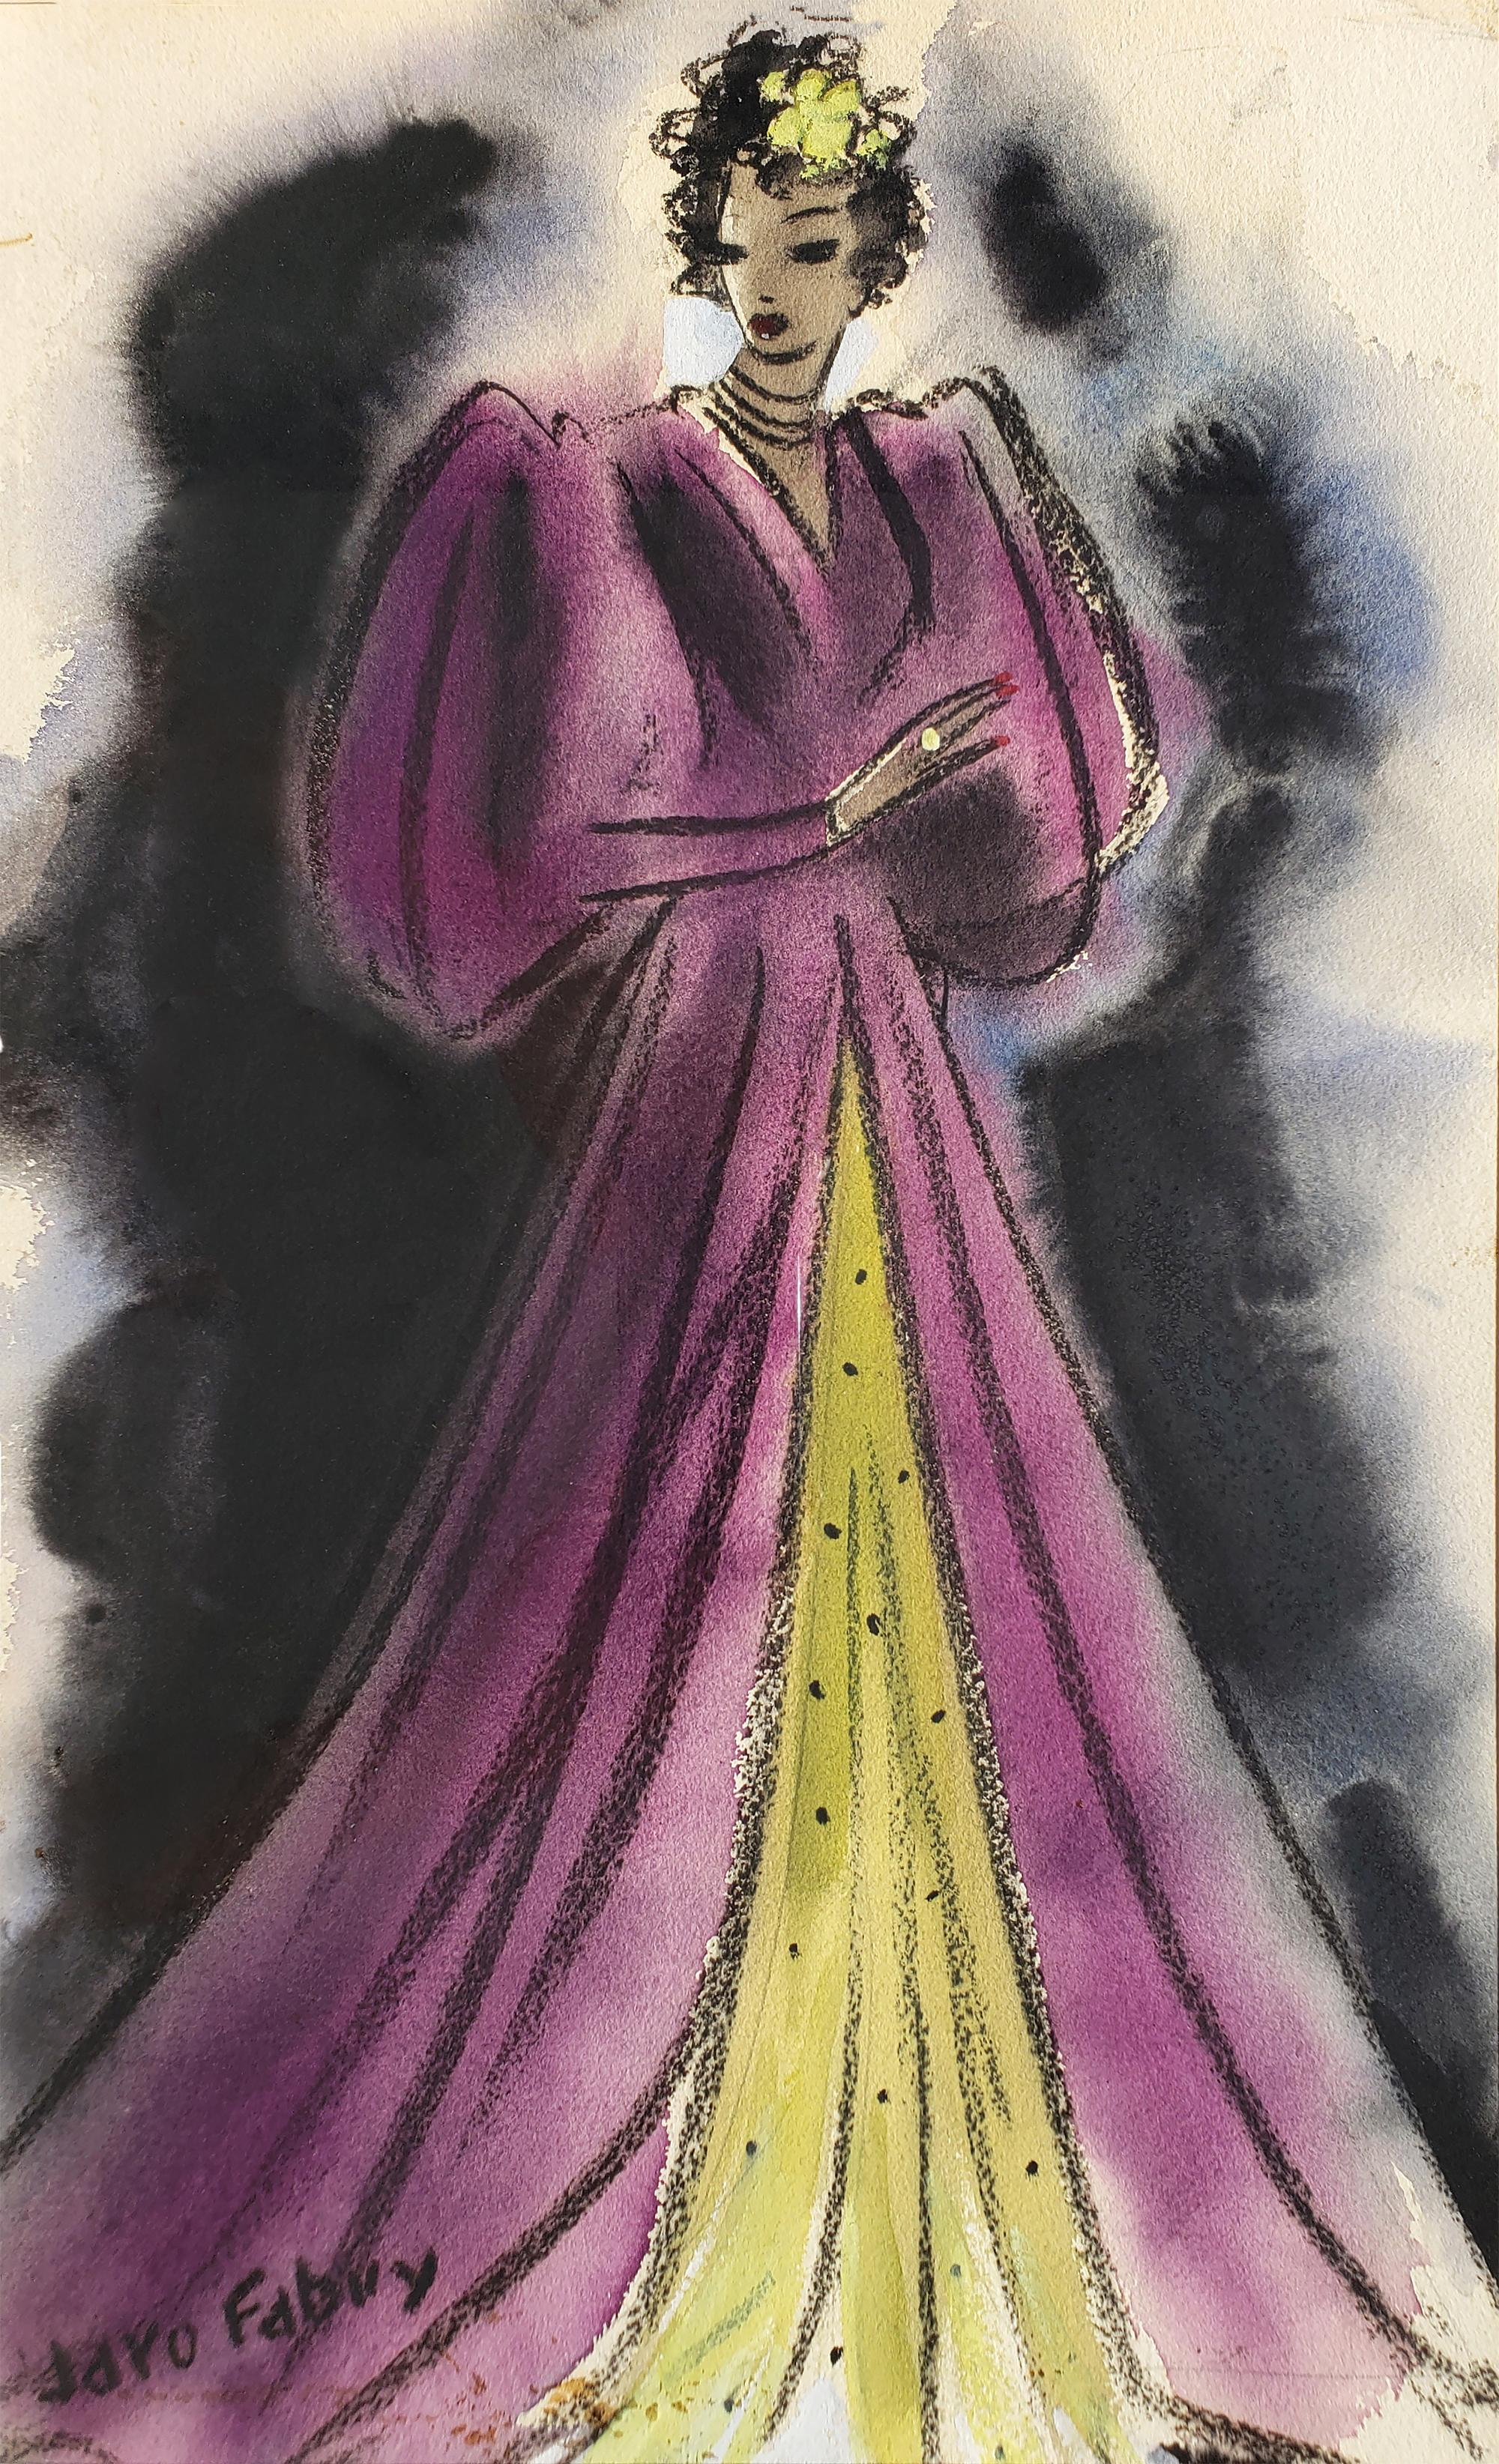 Art Deco Glamorous woman in Purple Evening Dress  - Golden Age of Hollywood